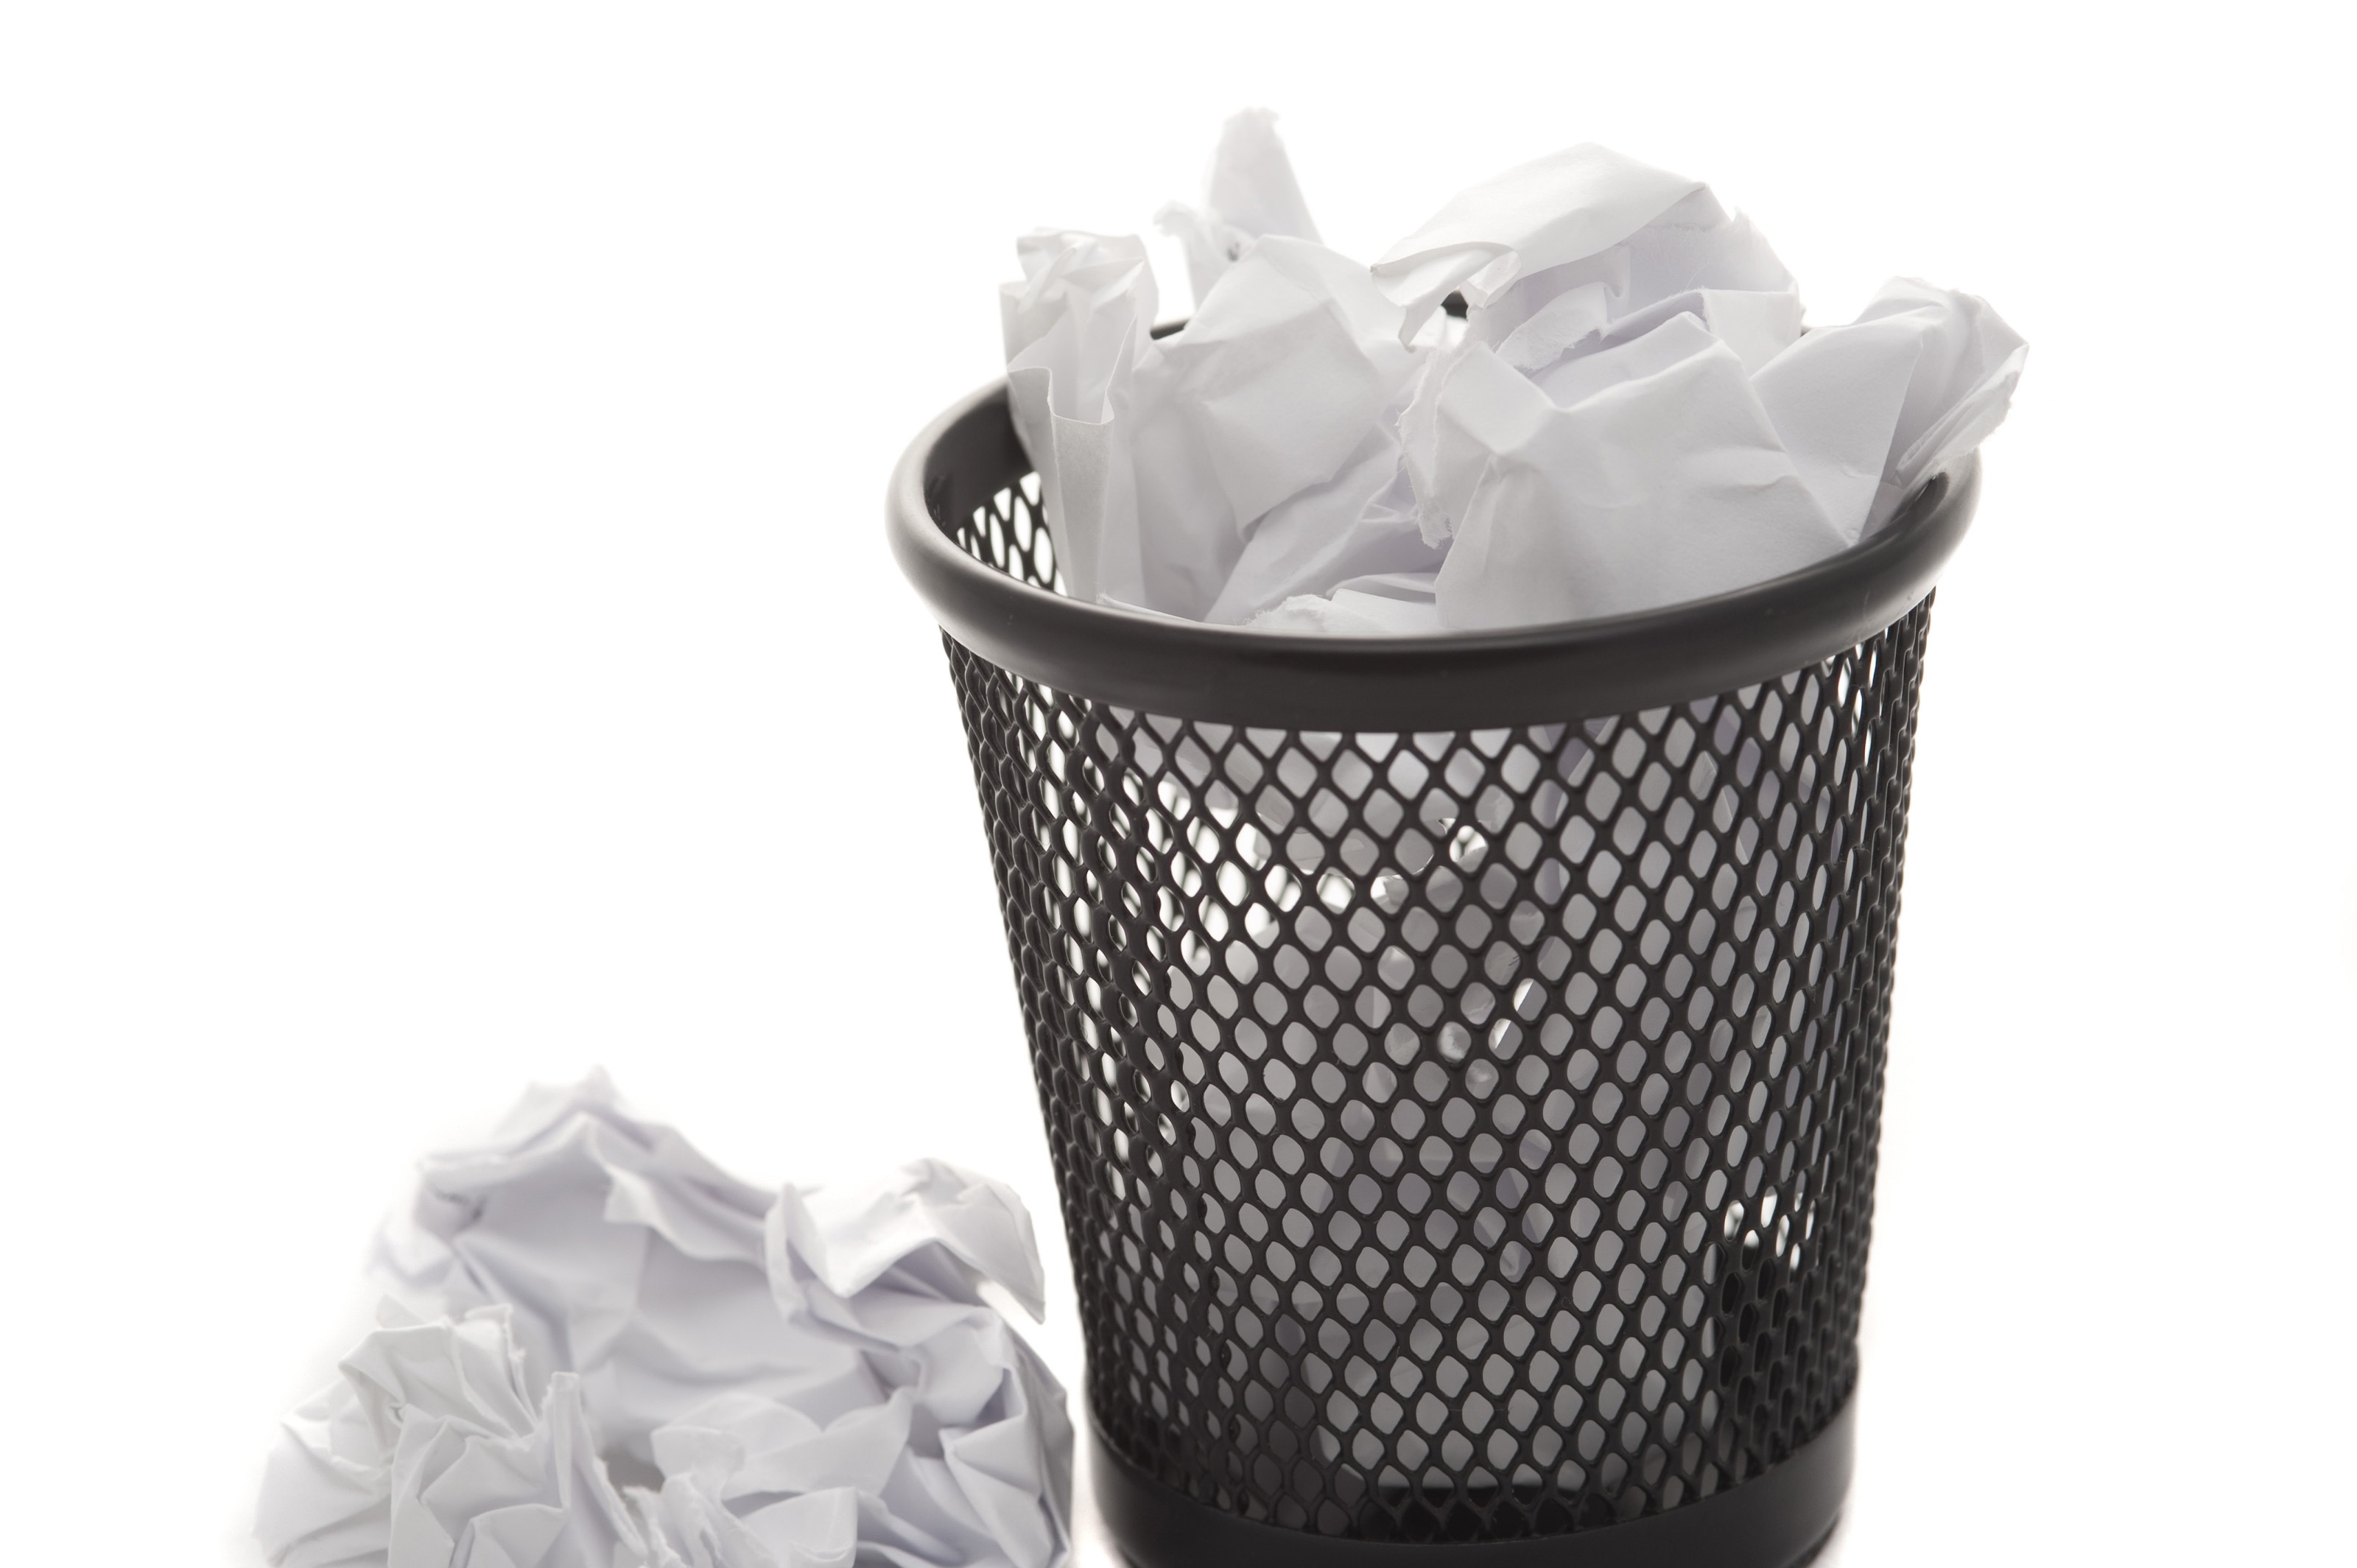 Waste Paper Basket Custom Free Stock Photo 5307 Mini Wastepaper Basket  Freeimageslive Inspiration